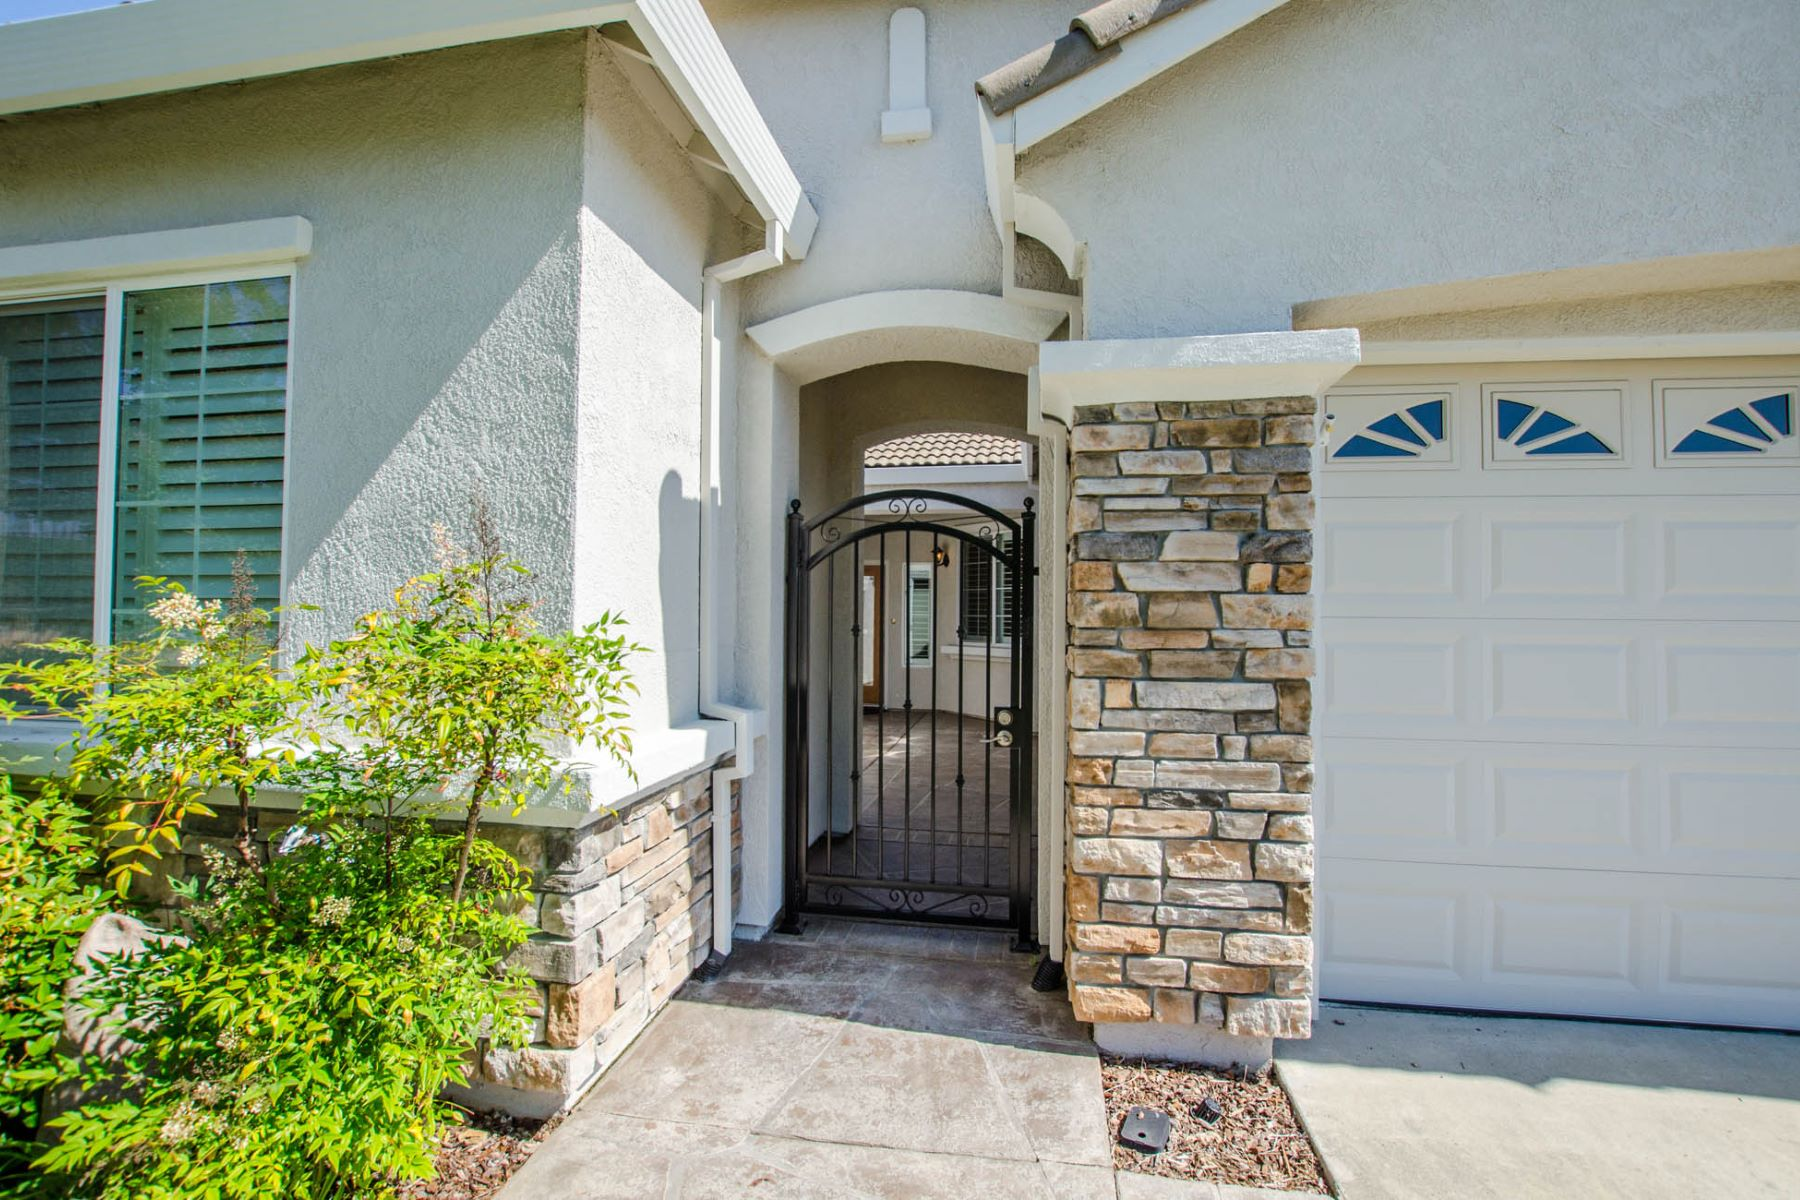 single family homes for Active at 9545 Sun Poppy Way, El Dorado Hills, CA 95762 9545 Sun Poppy Way El Dorado Hills, California 95762 United States